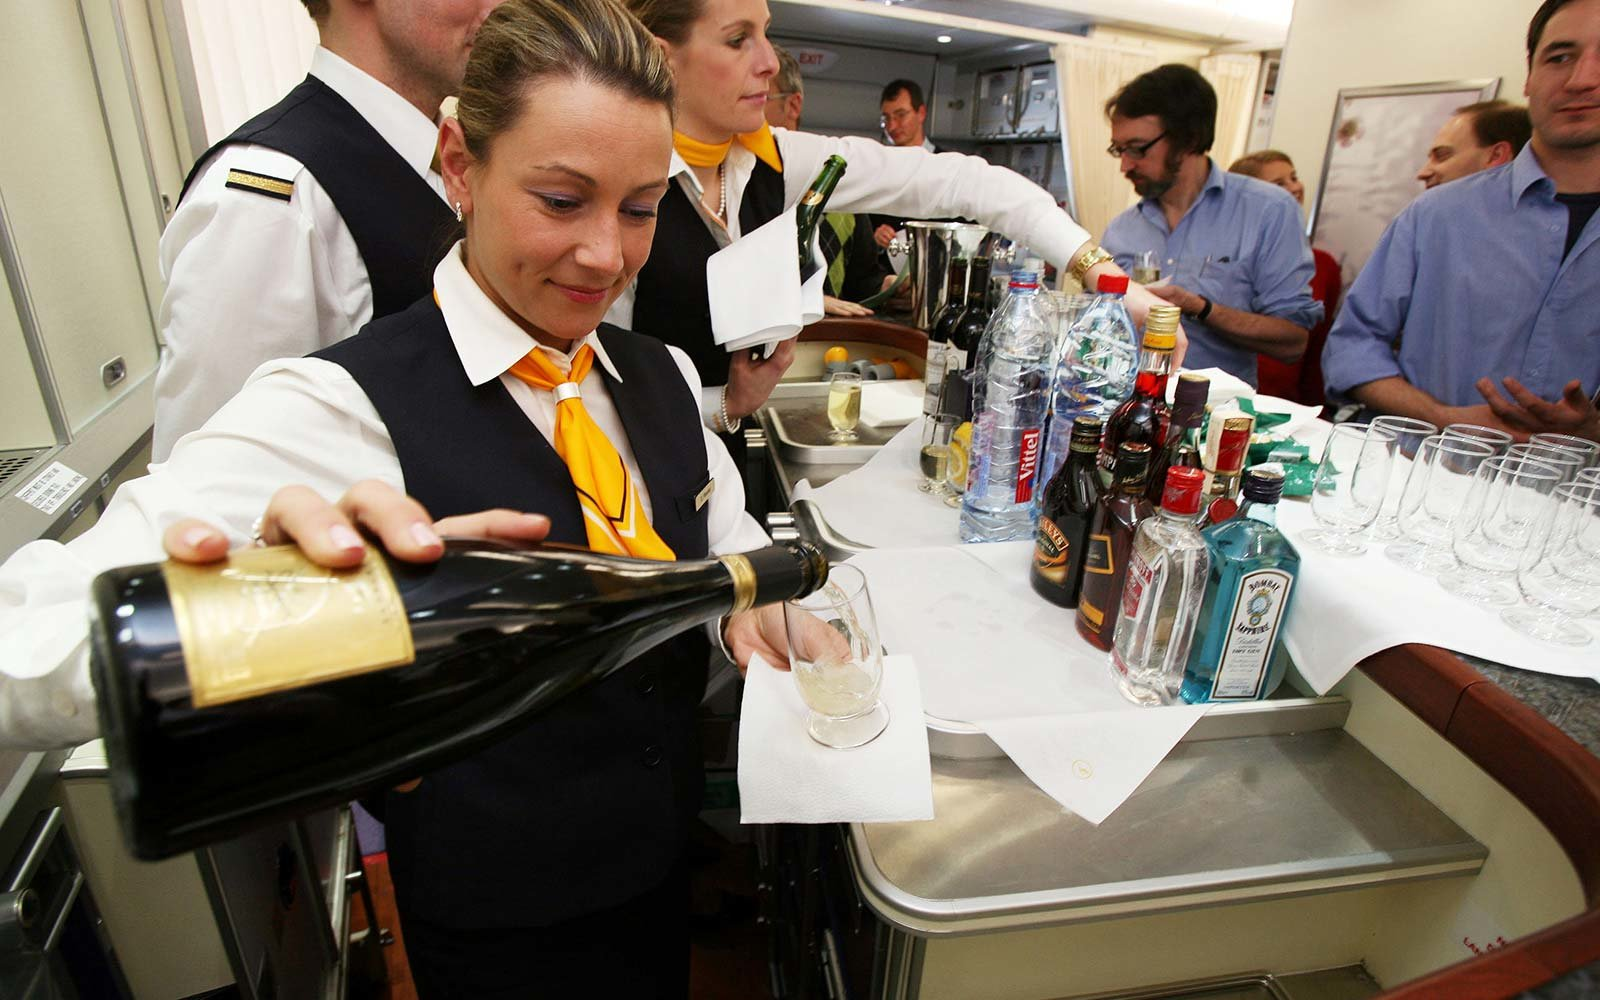 BBC television programme puts airport alcohol sales in the spotlight once again